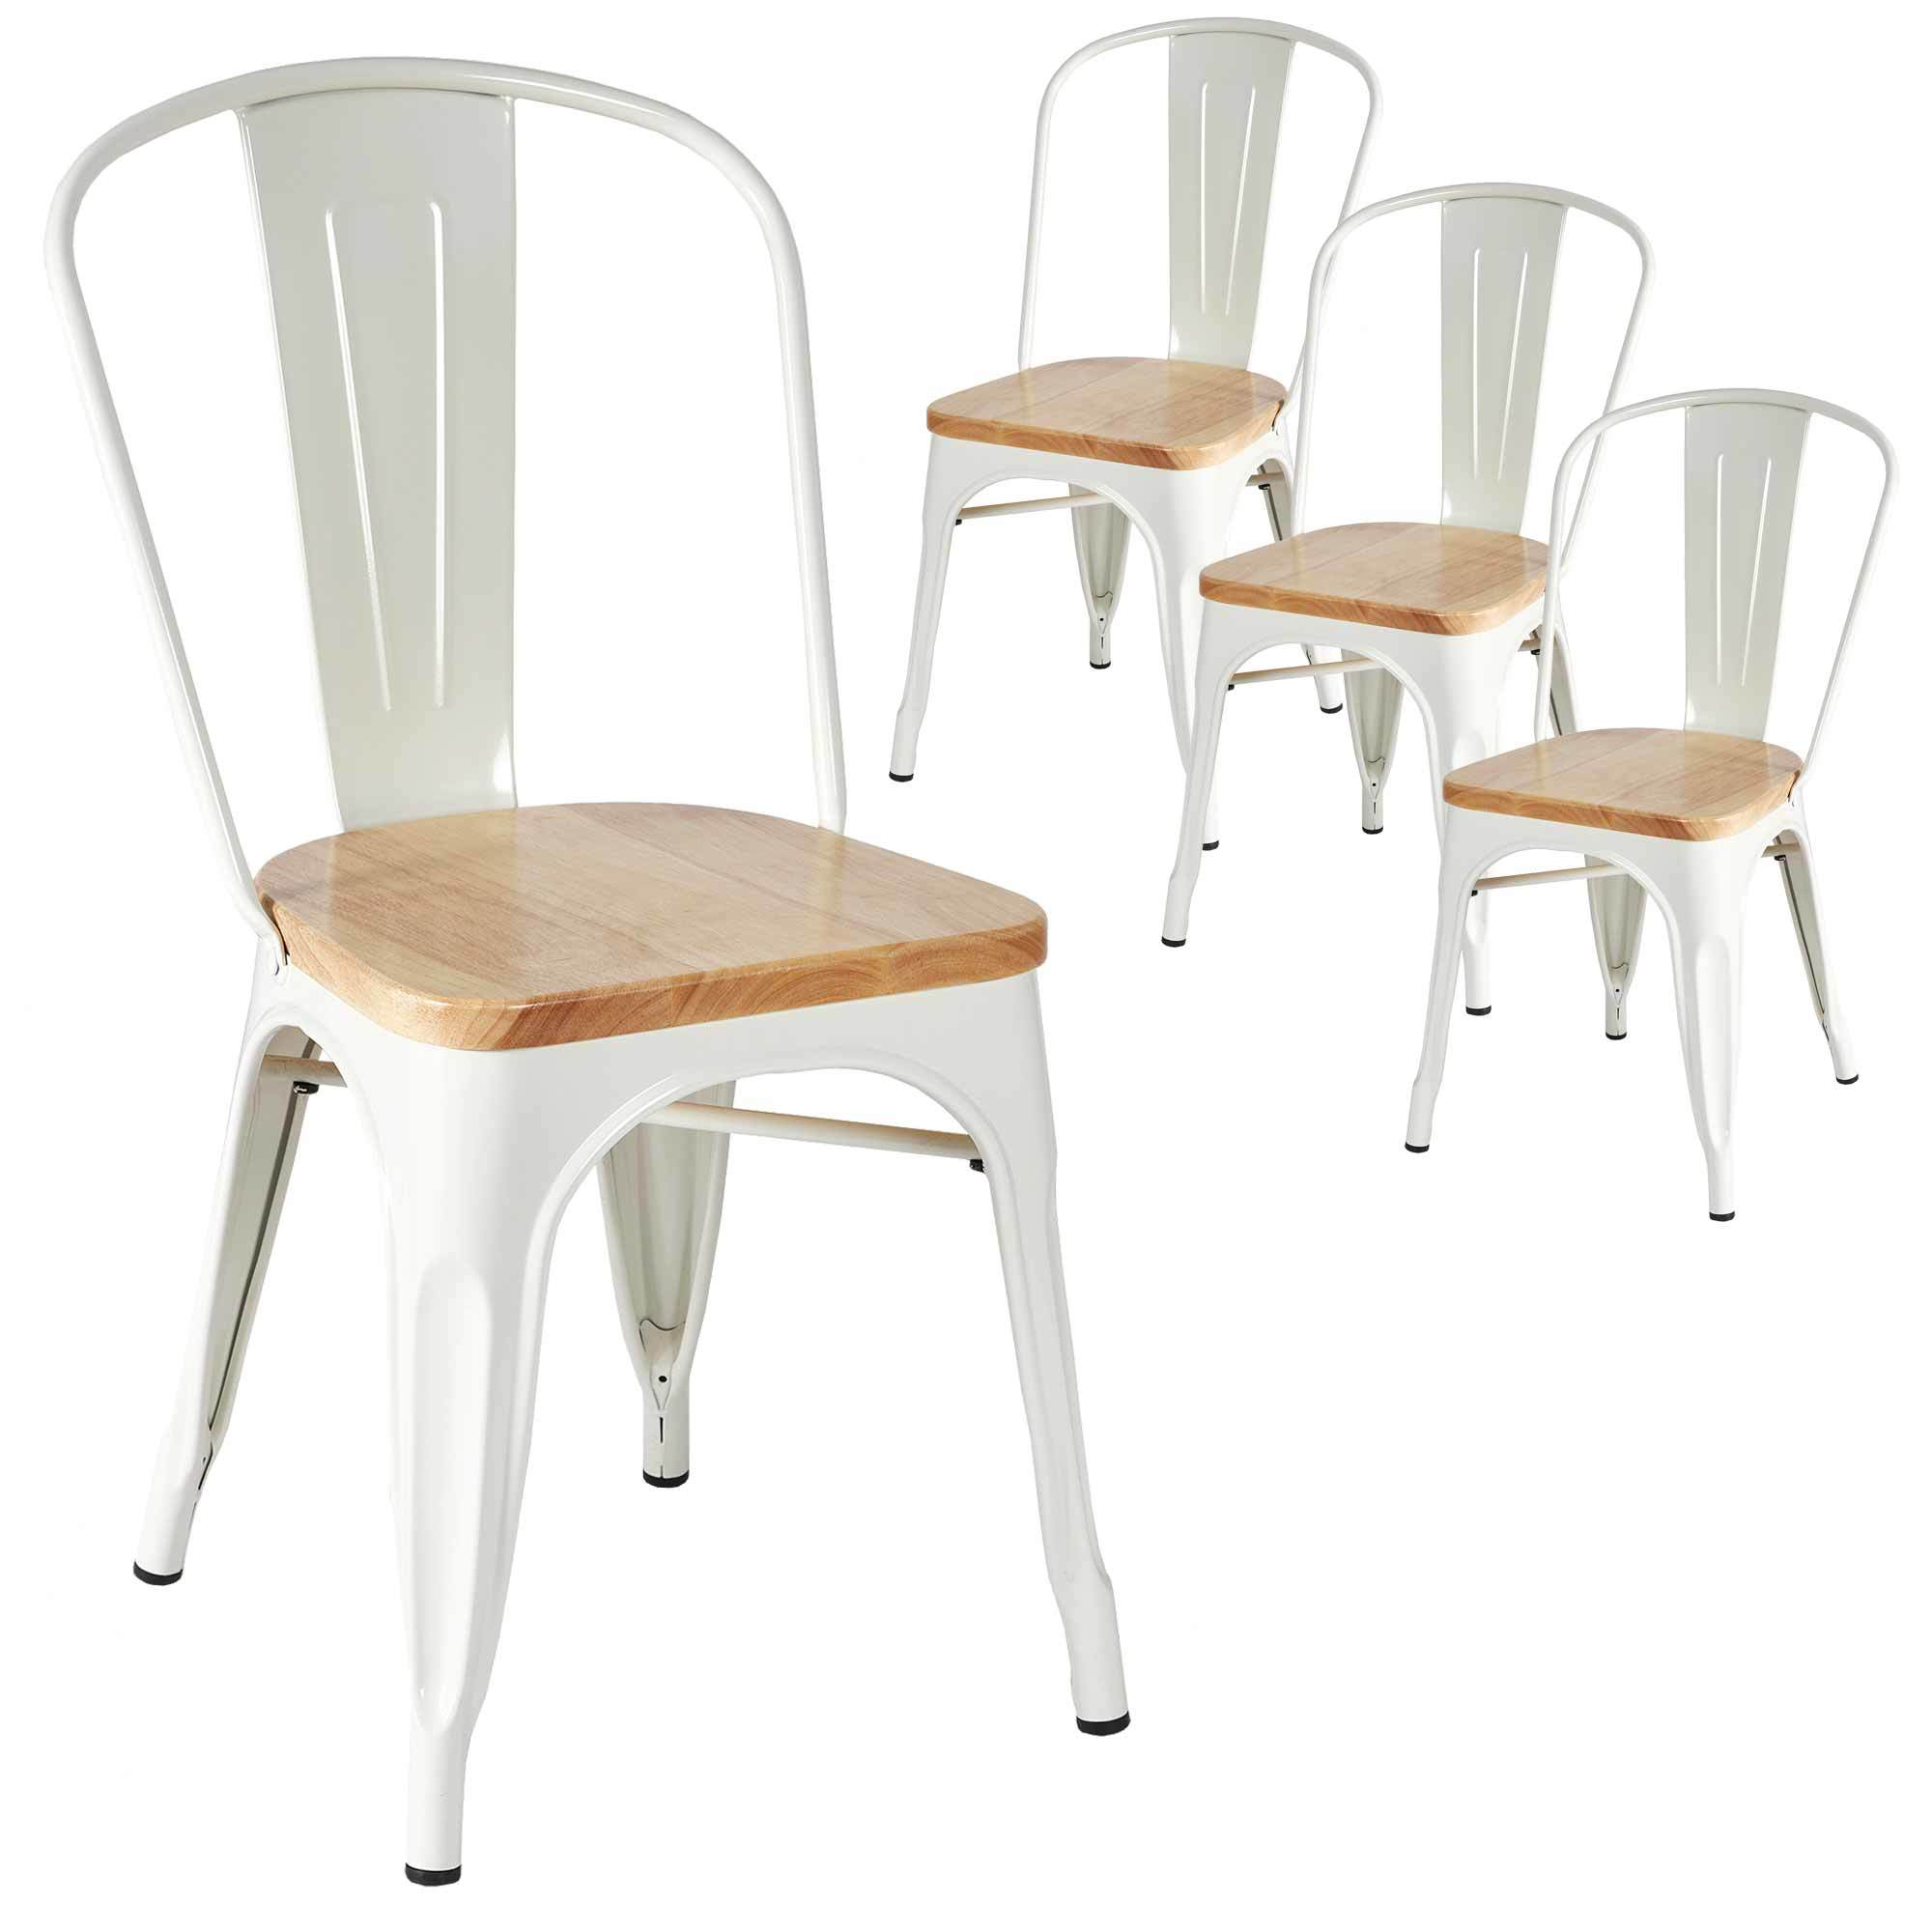 dining chairs dining chairs online temple webster